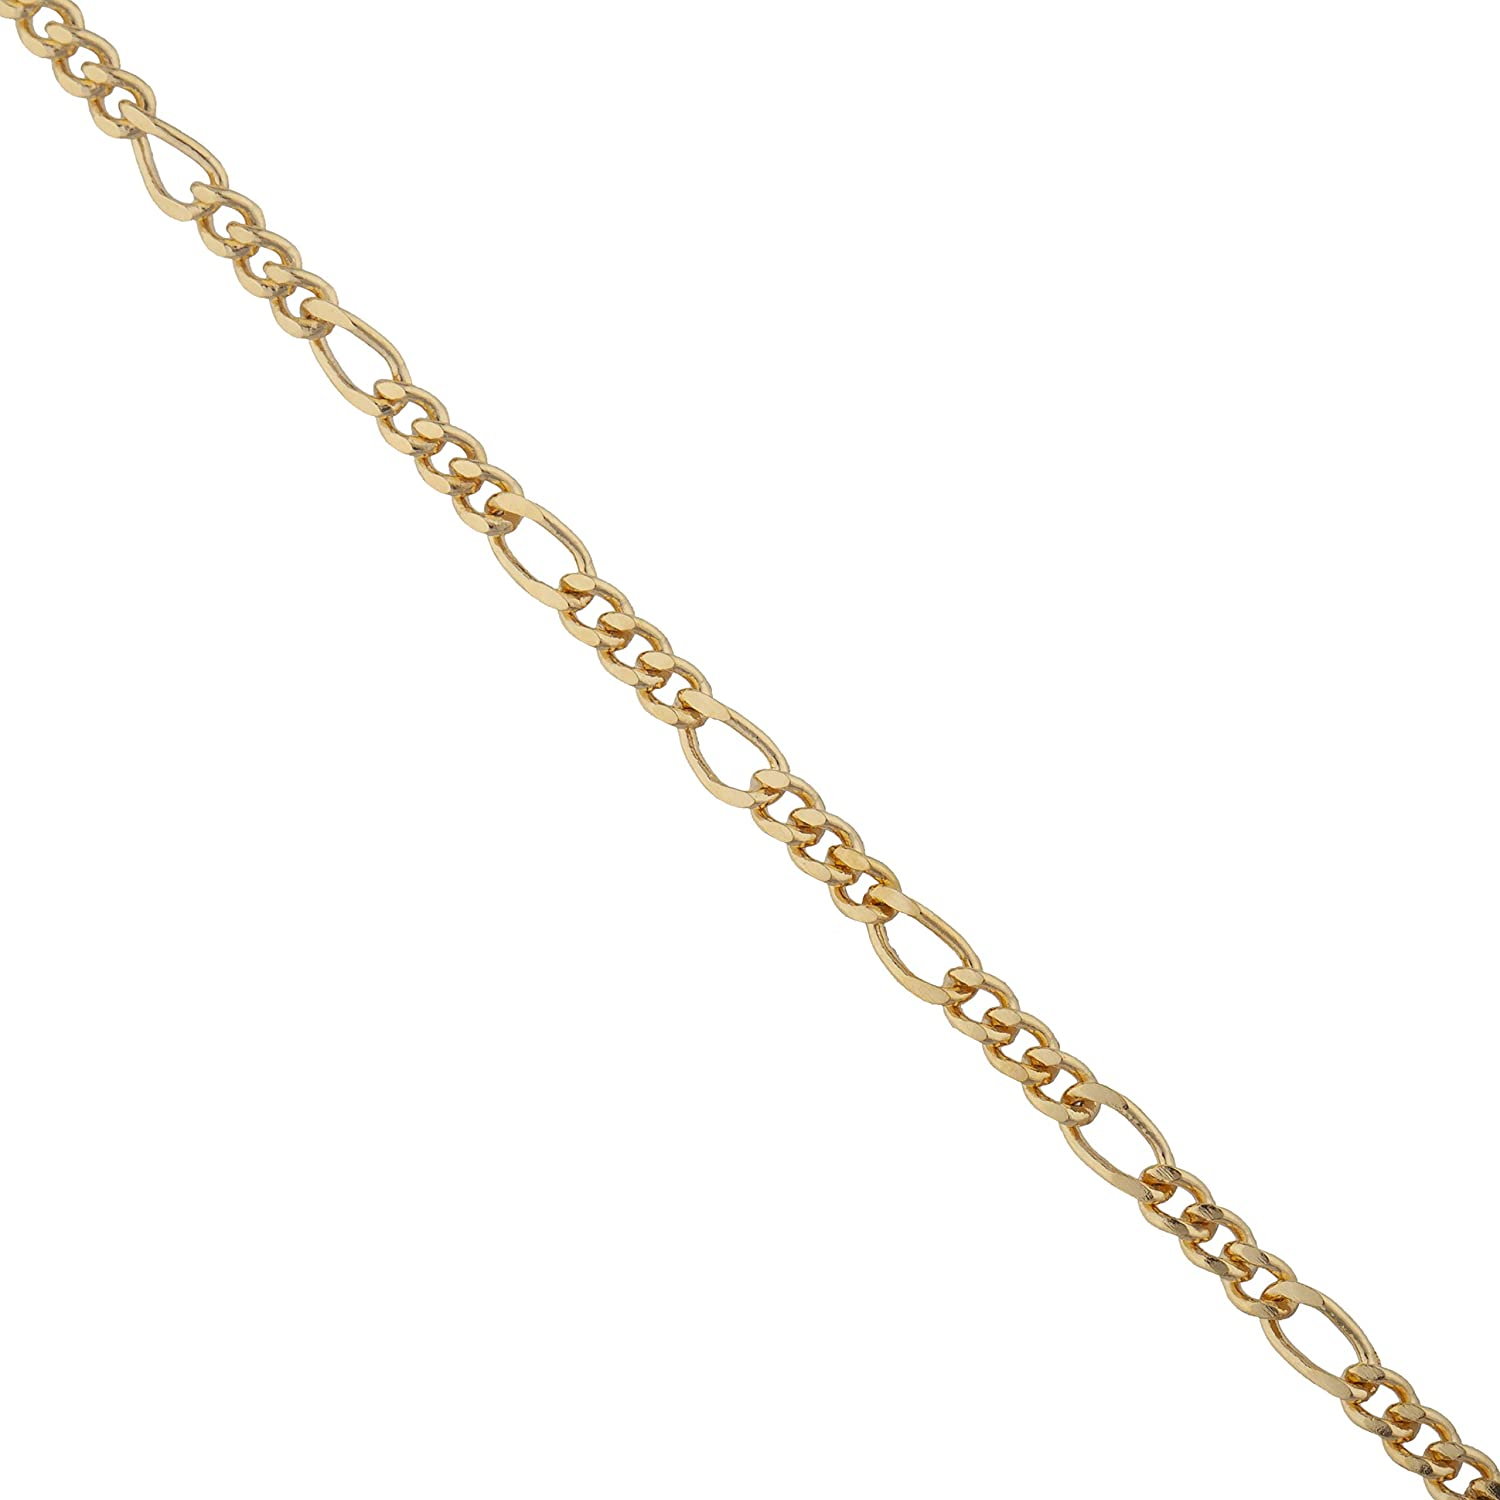 JOTW 14K Filigree Hamsa Hand Charm with 18 inch Gold Overlay Figaro Chain Necklace (RELG-58)